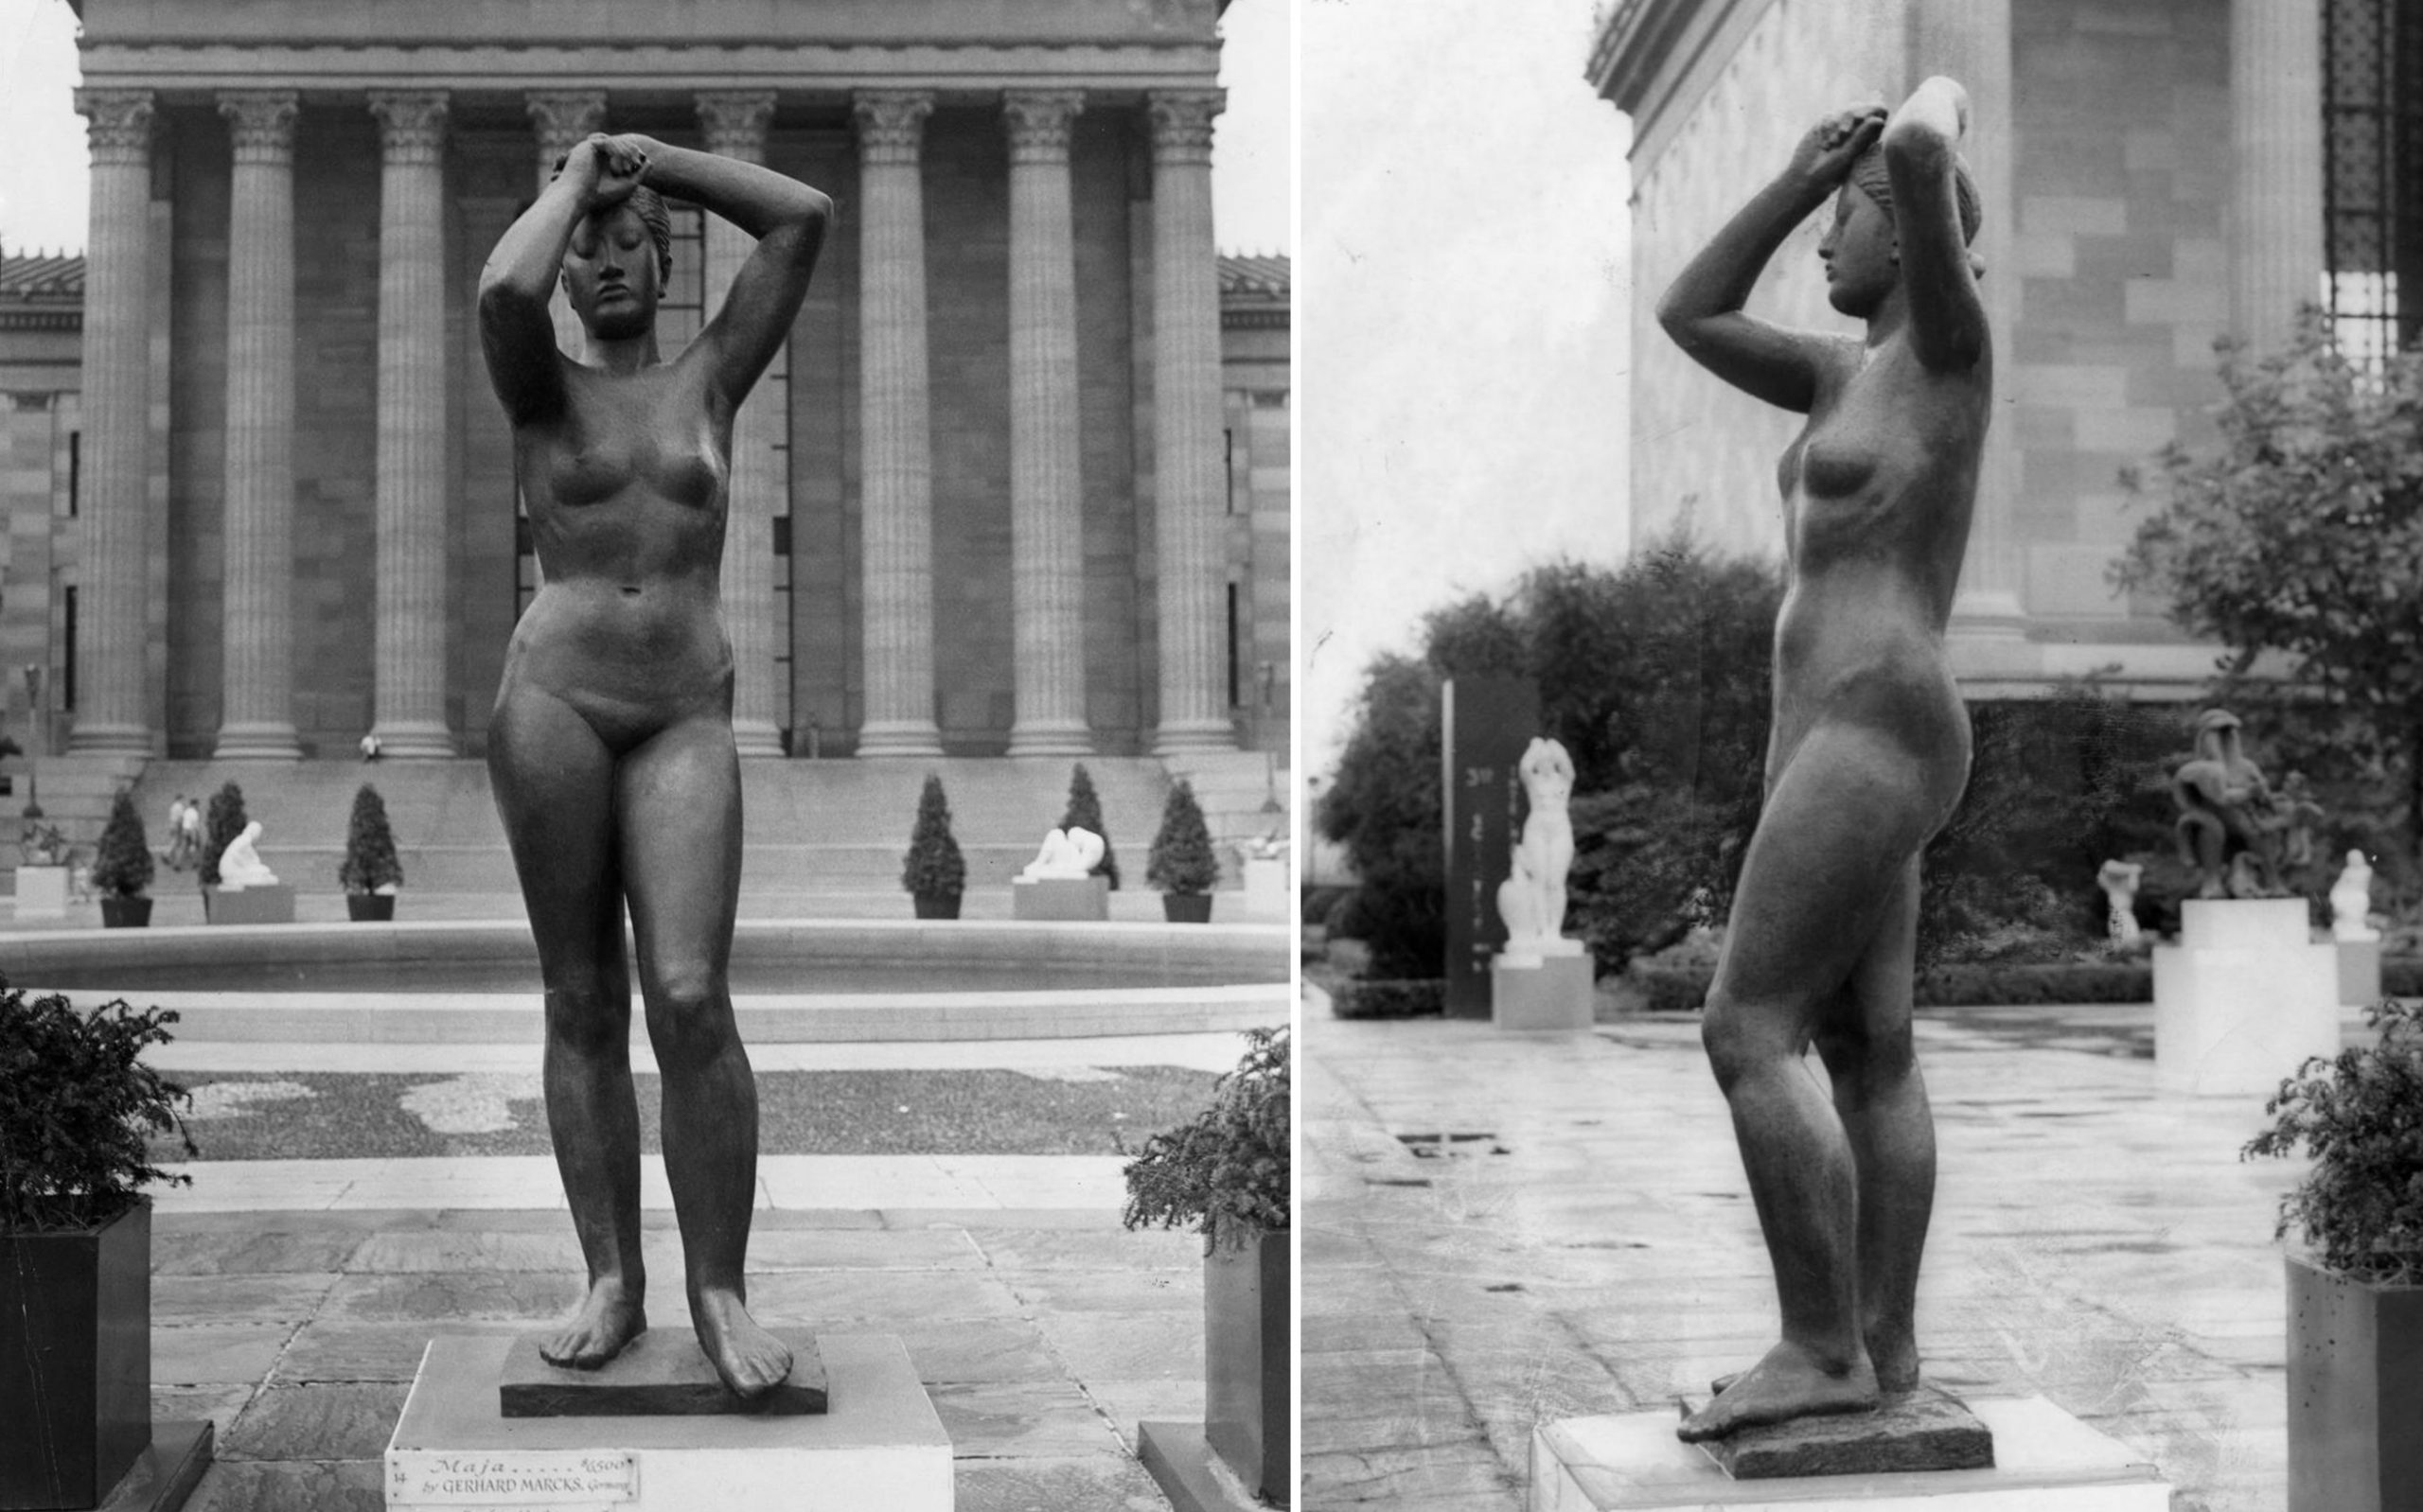 Black and white photos of Maja nude female sculpture in front of the Philadelphia Museum of Art in 1949